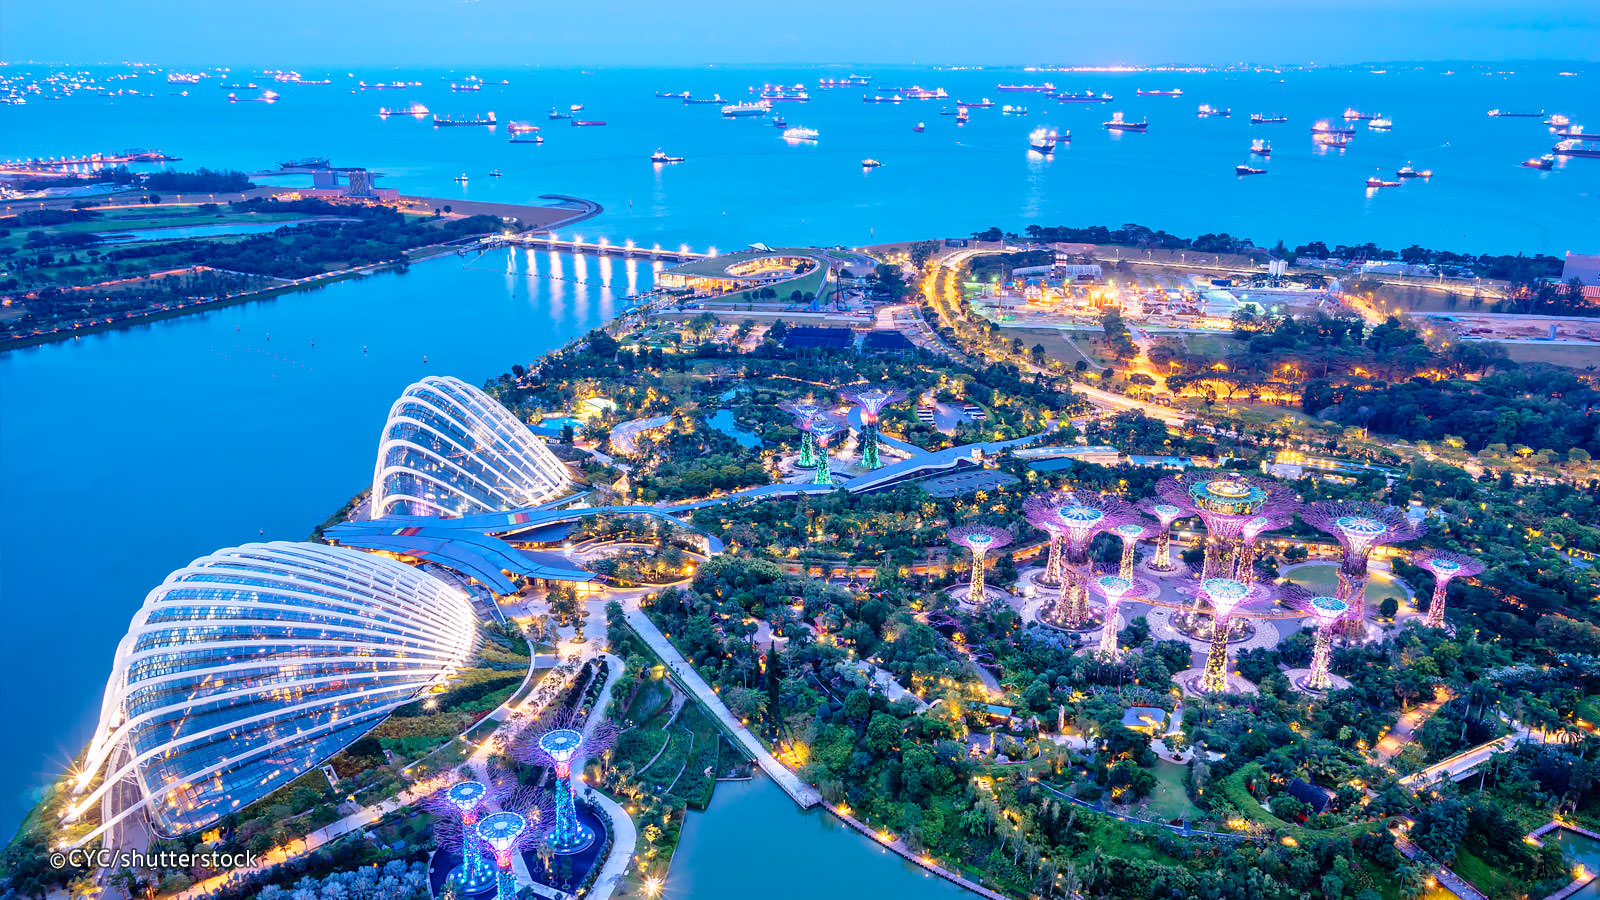 gardens-by-the-bay-singapore.jpg